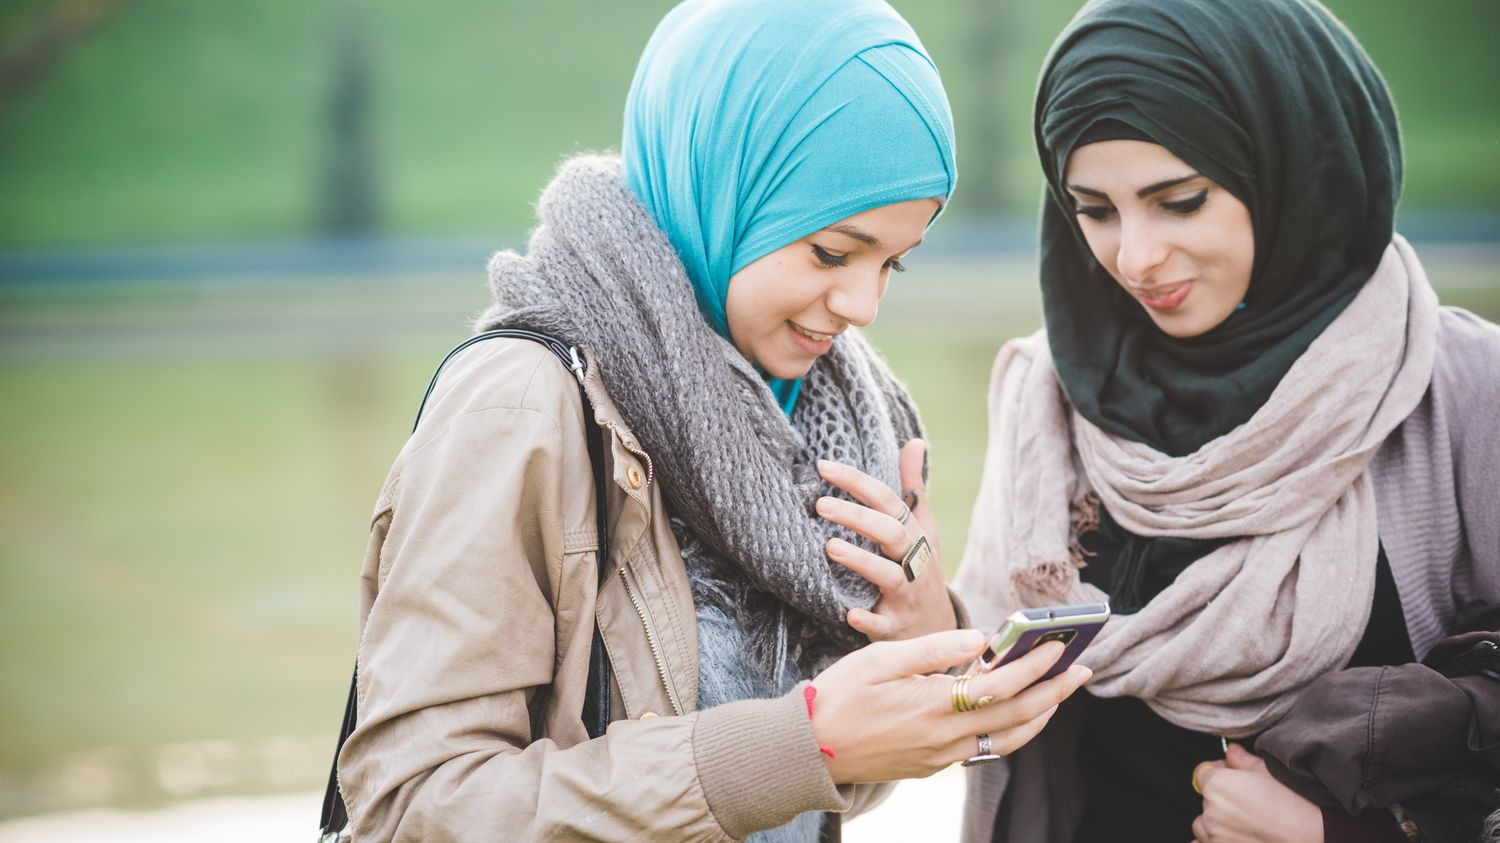 mayetta muslim girl personals 5 hijabis get real on what it's like to date when you're muslim-  who use  hijab as a way of categorizing women into good girl vs bad girl,.